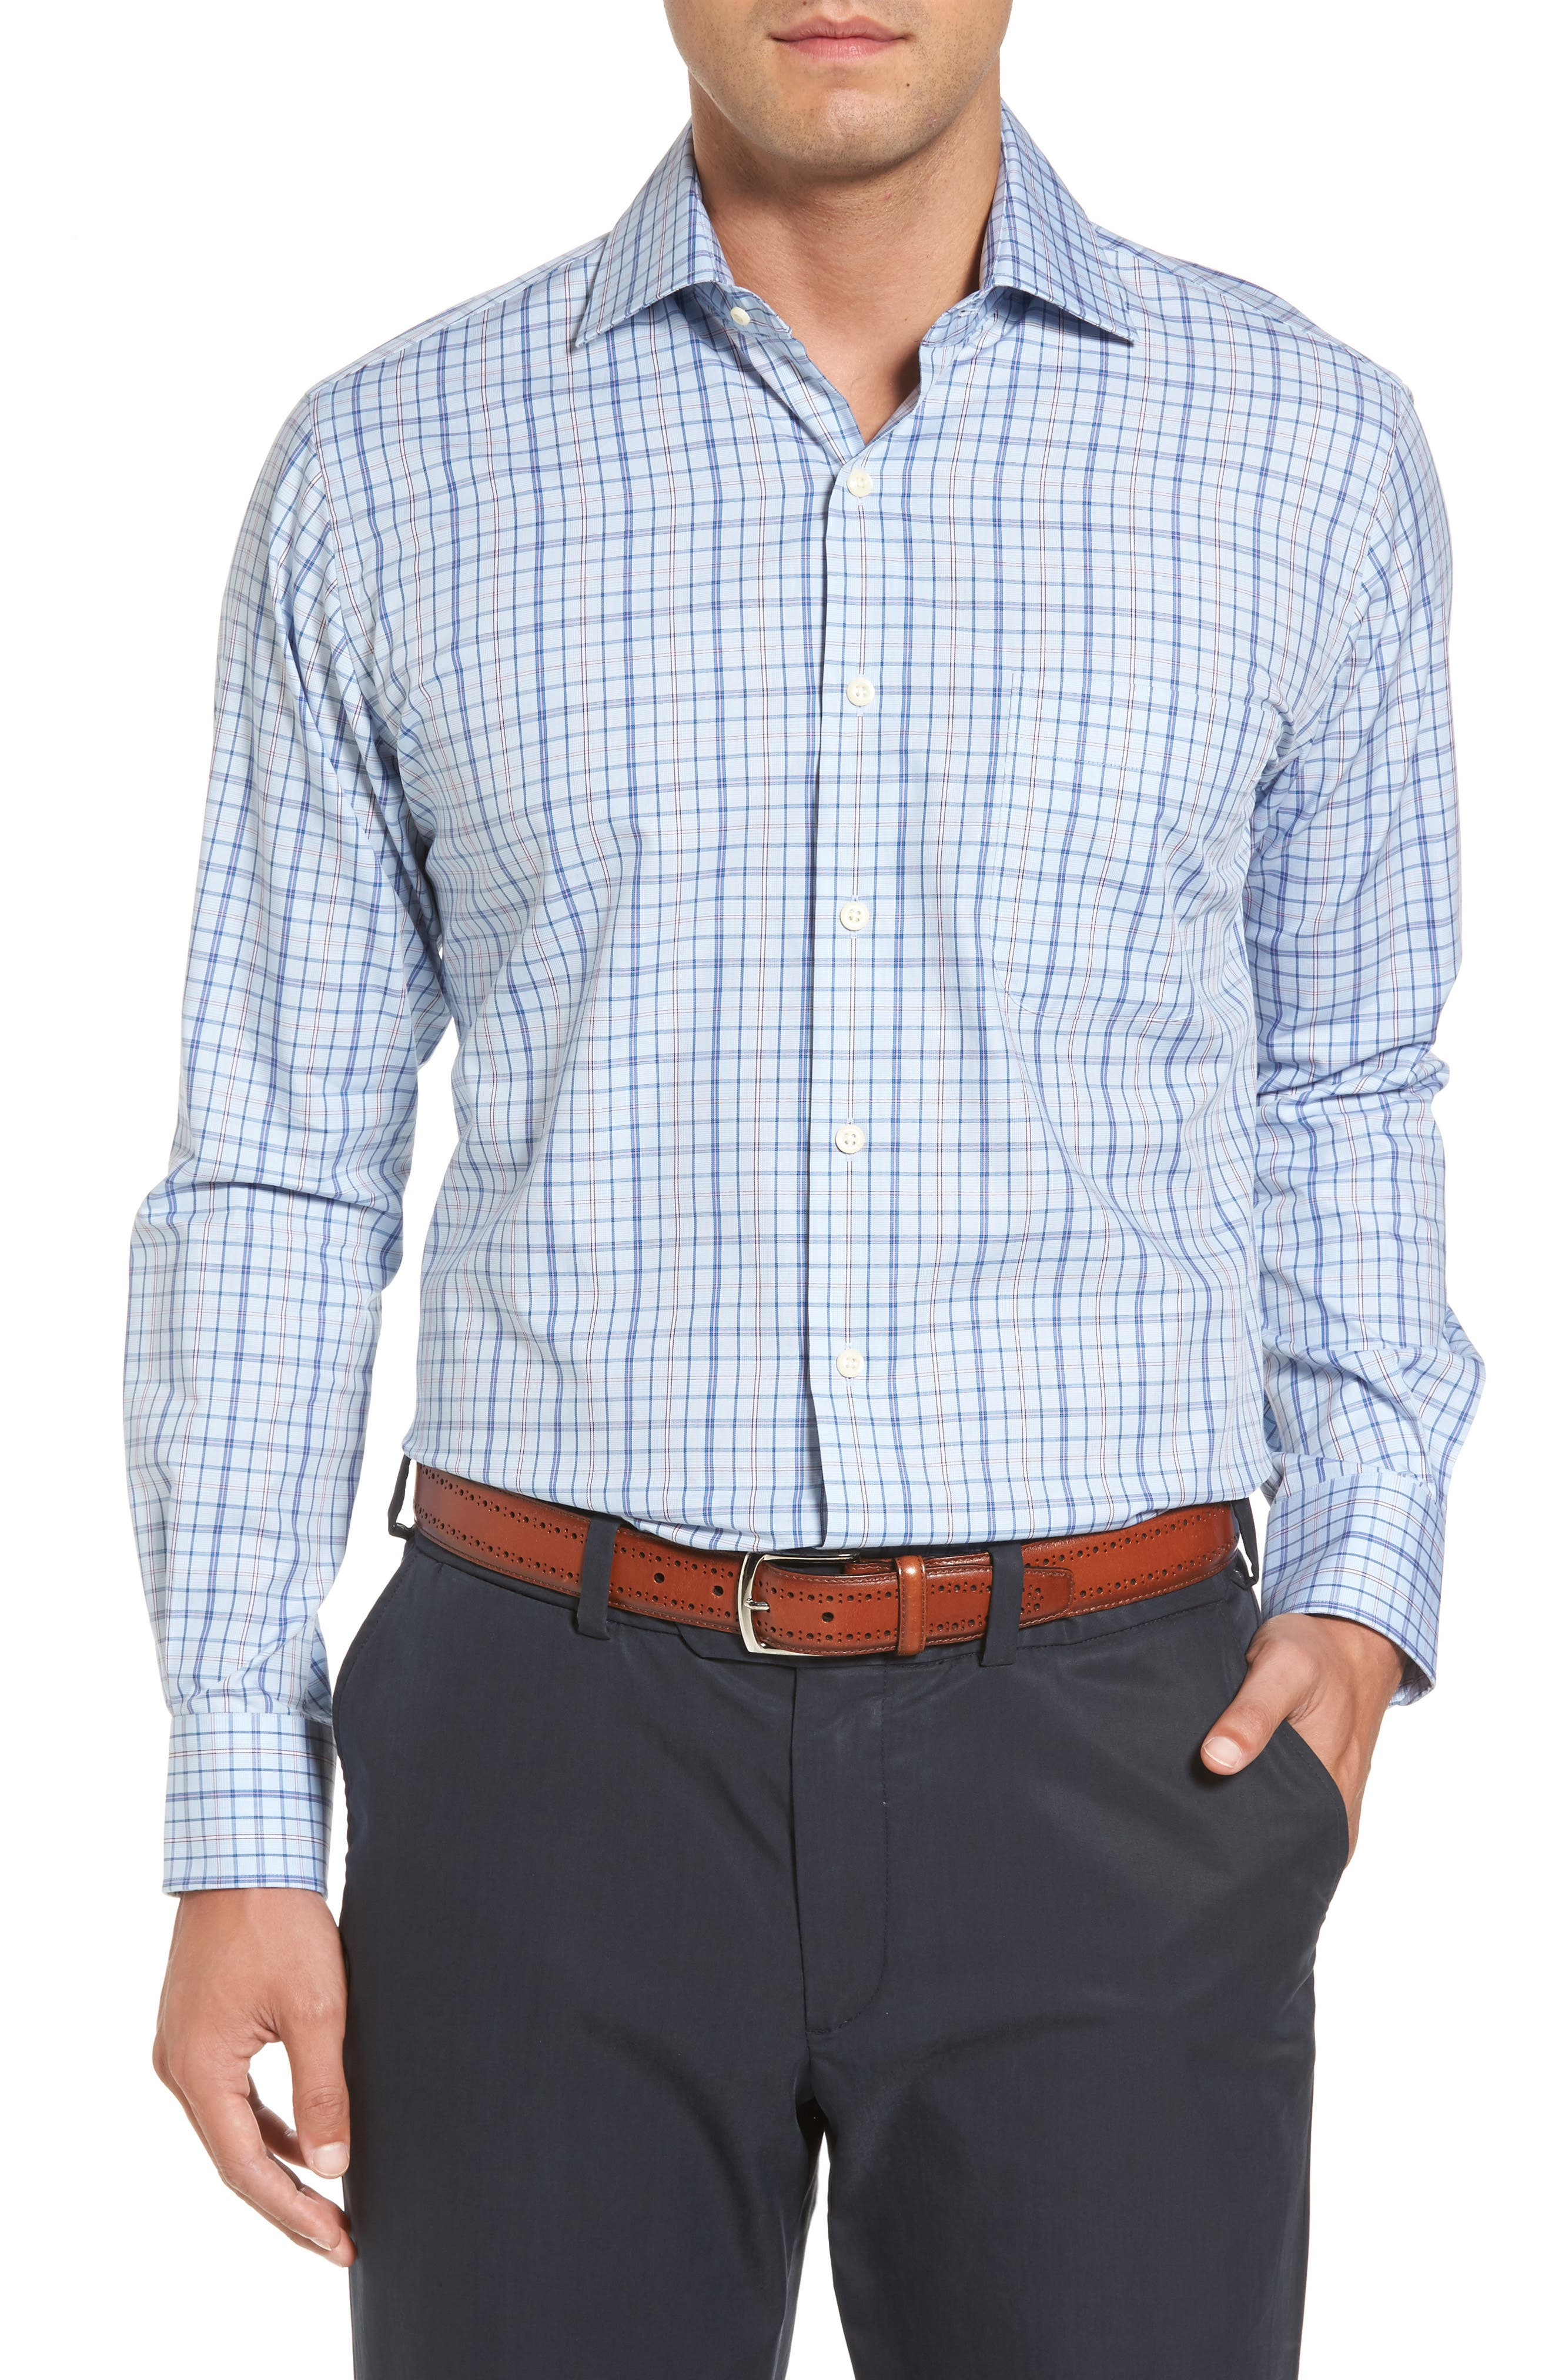 Coastland Regular Fit Plaid Sport Shirt,                             Main thumbnail 1, color,                             437